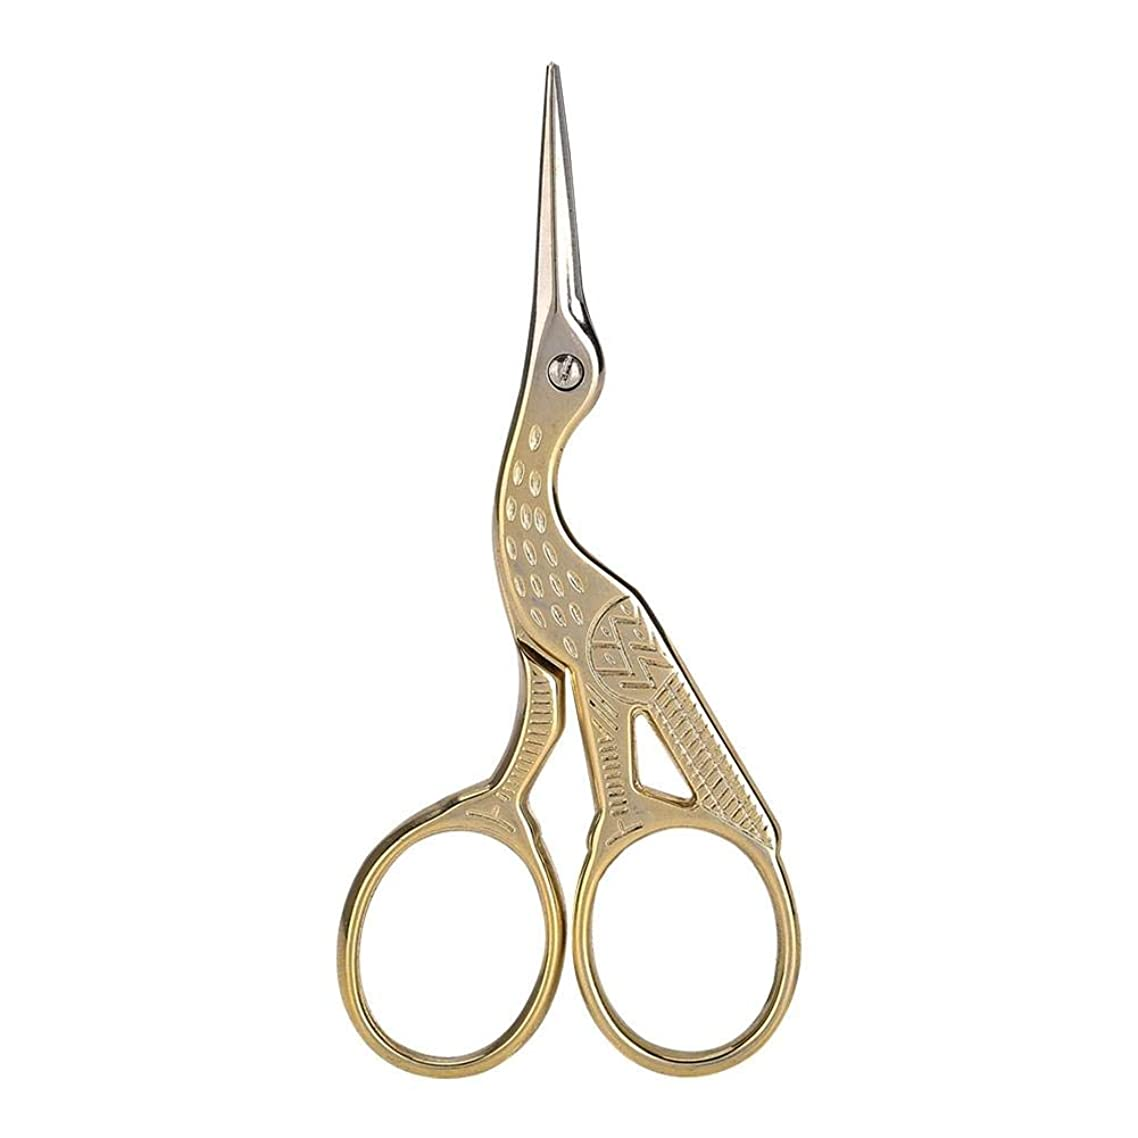 Alucy Professional Vintage Stainless Steel Precision Manicure Scissor-Nail Art Scissor,Manicure Shear Tools, Sewing Scissors Small Sharp for Crafting, Art Work,Needlework&Everyday Use (Gold)